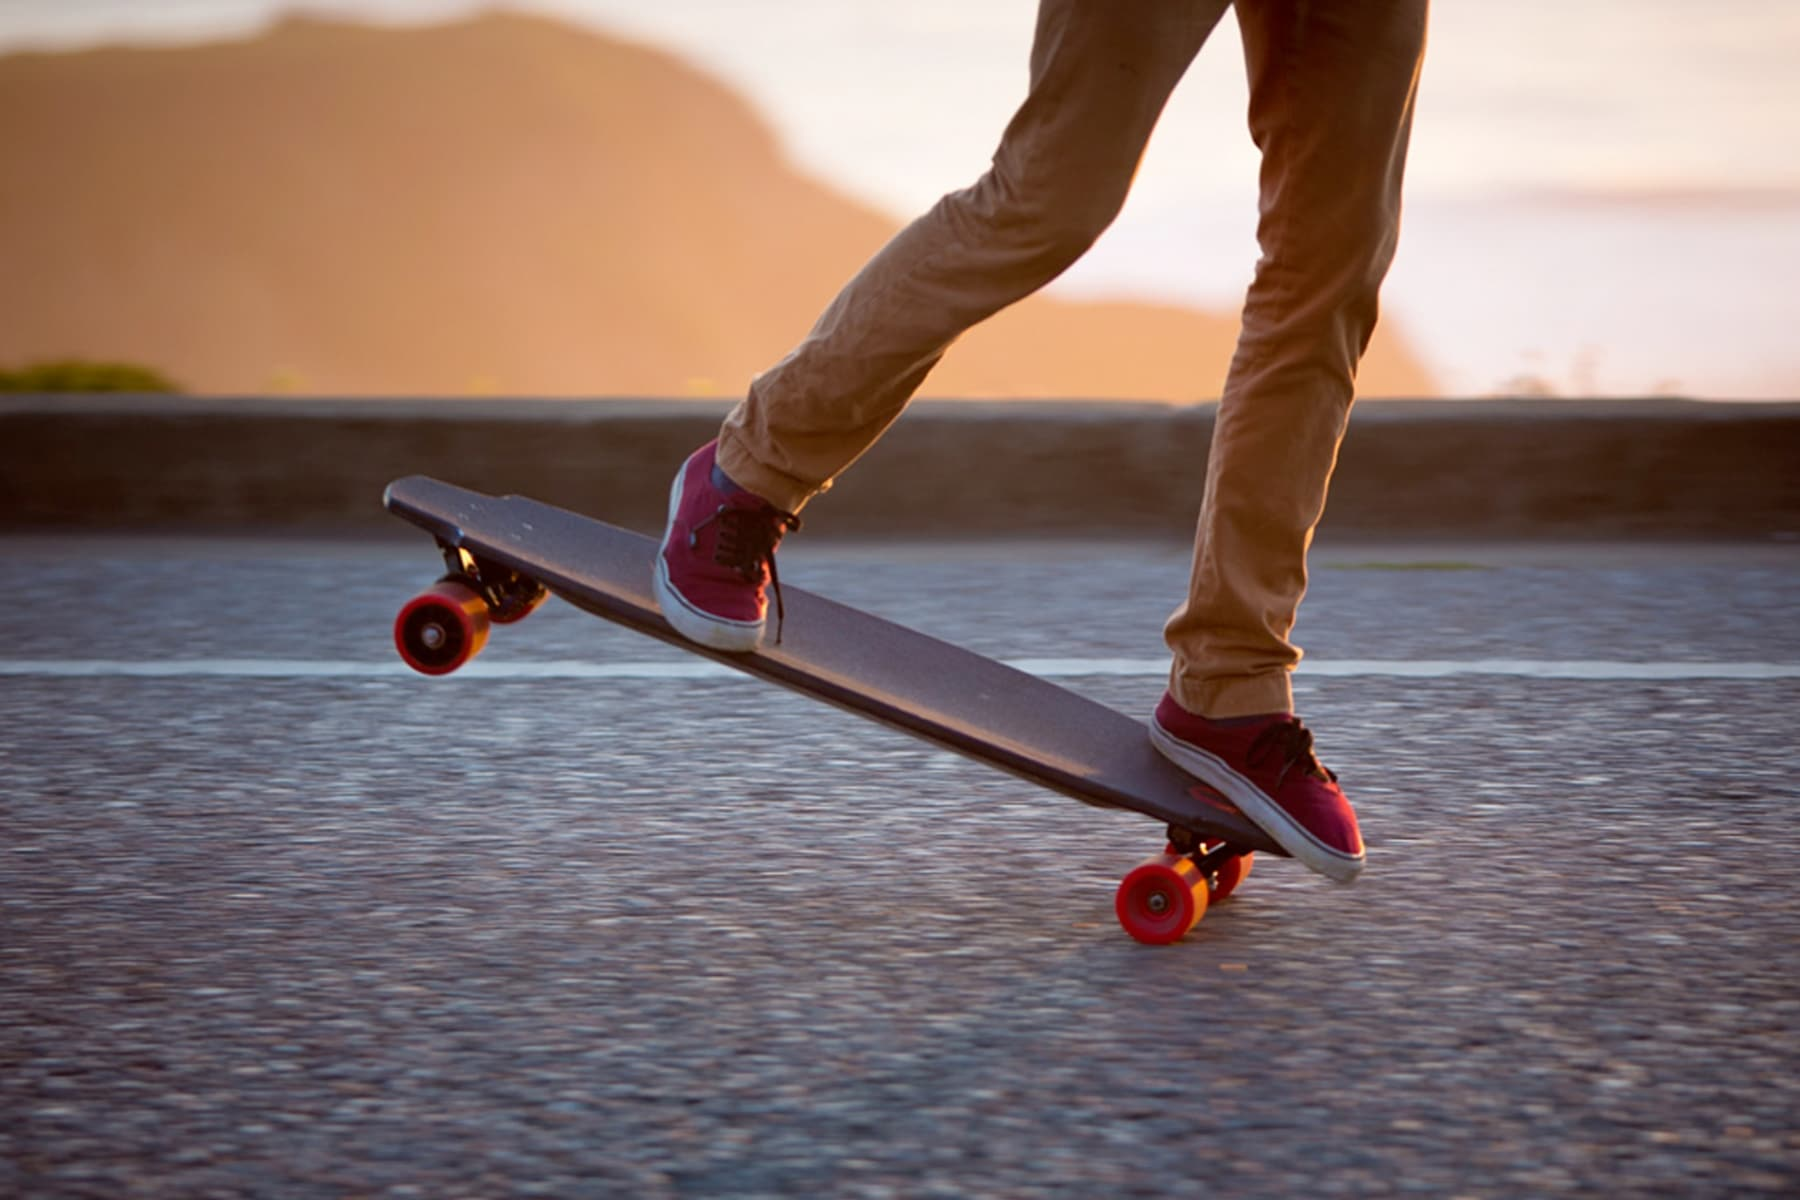 10 Most Popular Electric Skateboards for Teens [Buying Guide] 18